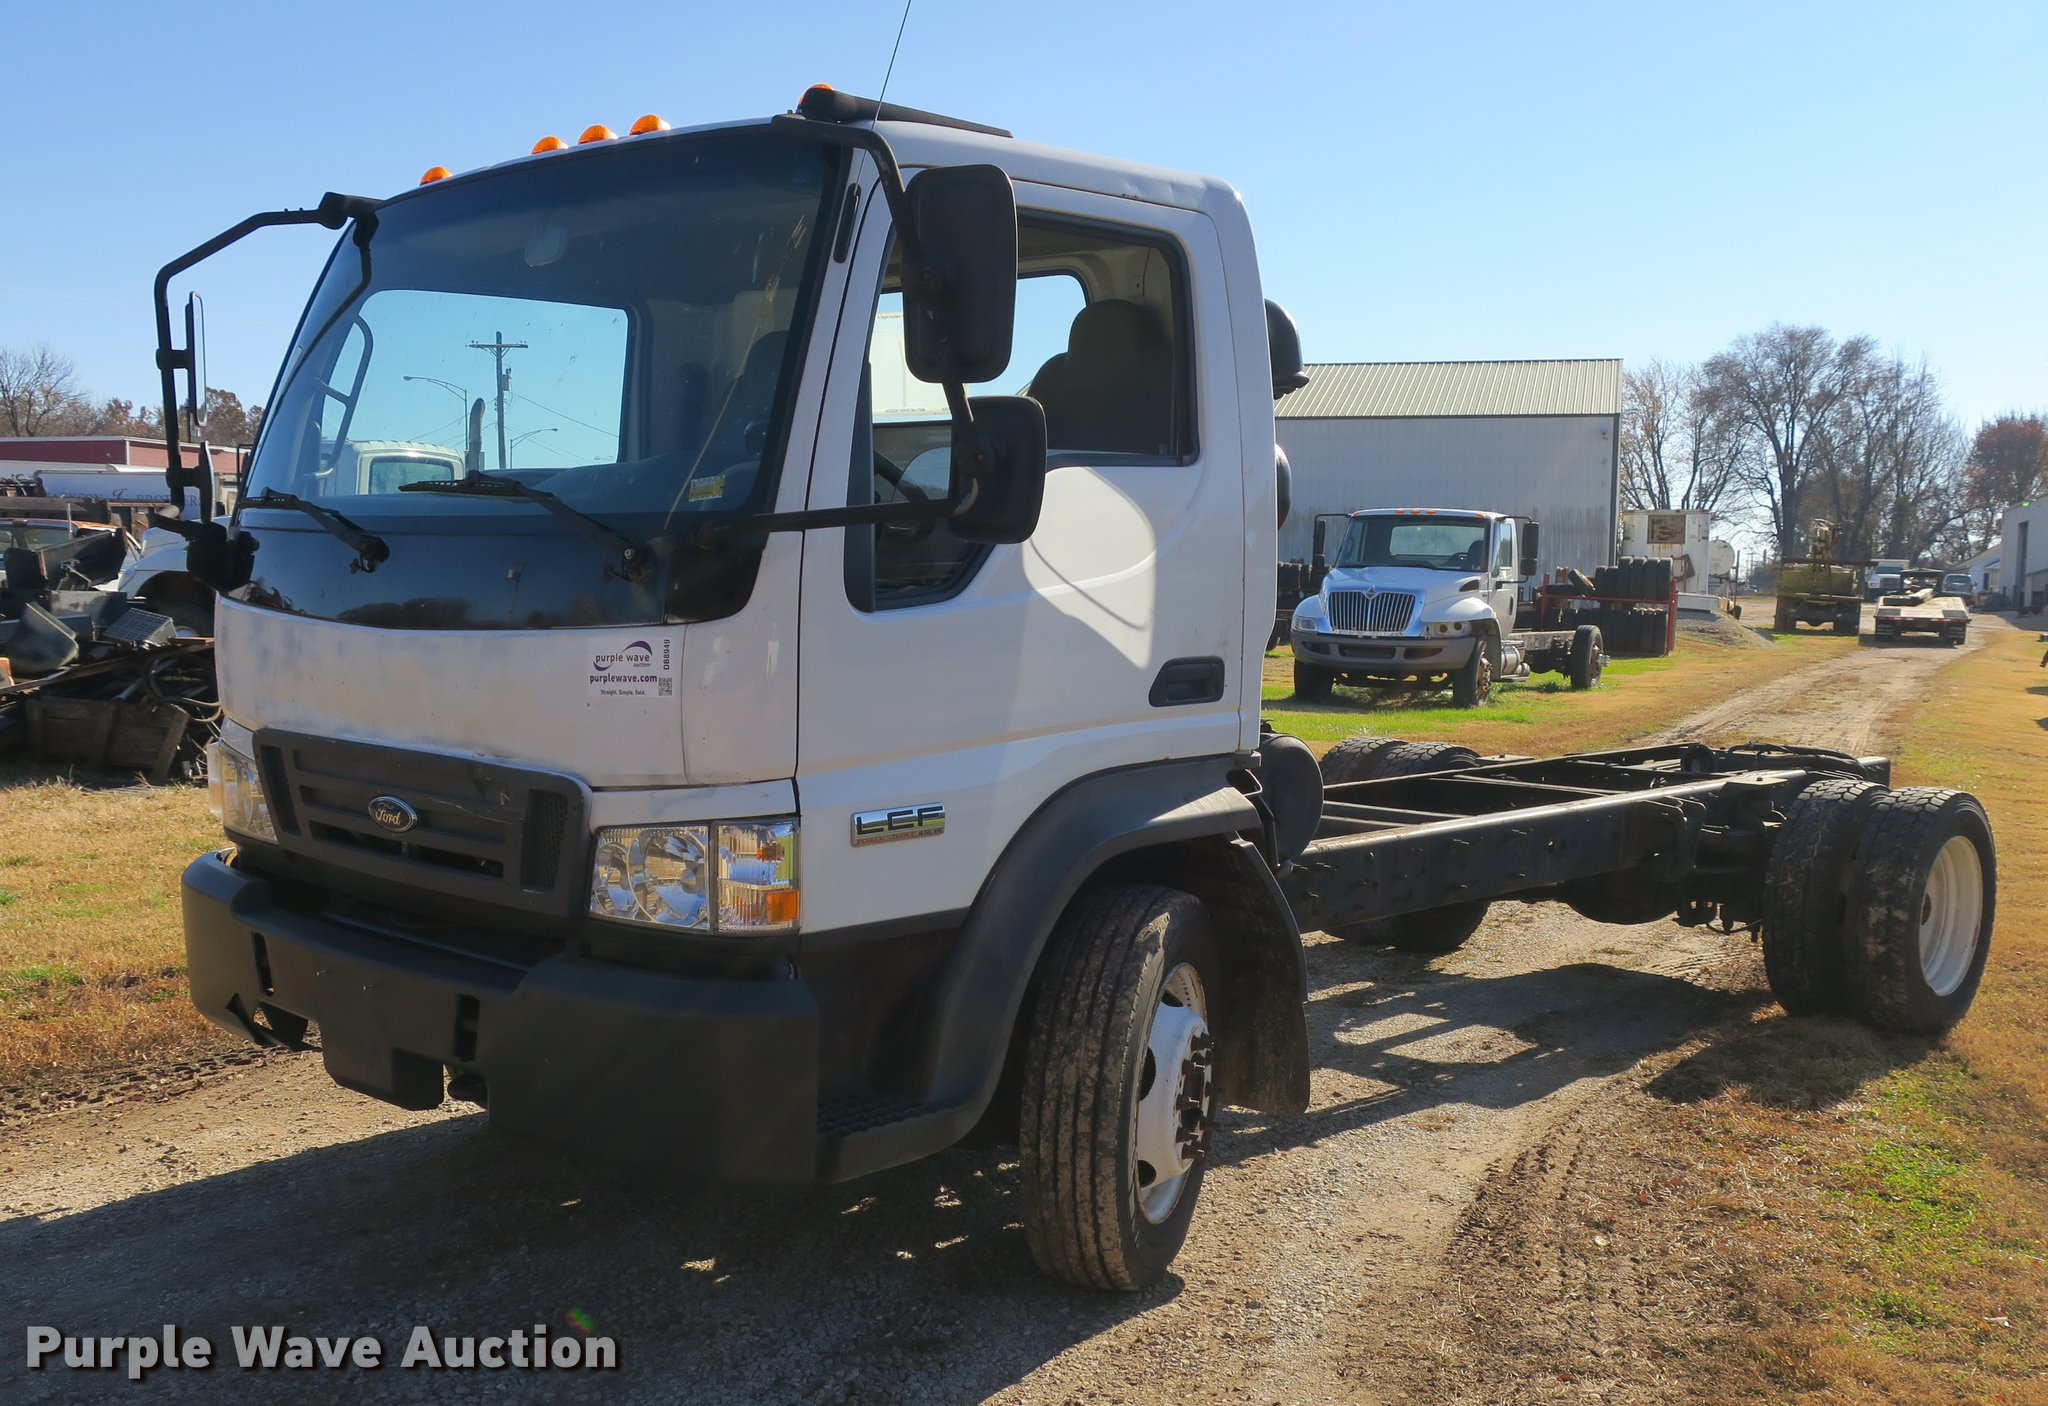 ... 2007 Ford LCF truck cab and chassis Full size in new window ...